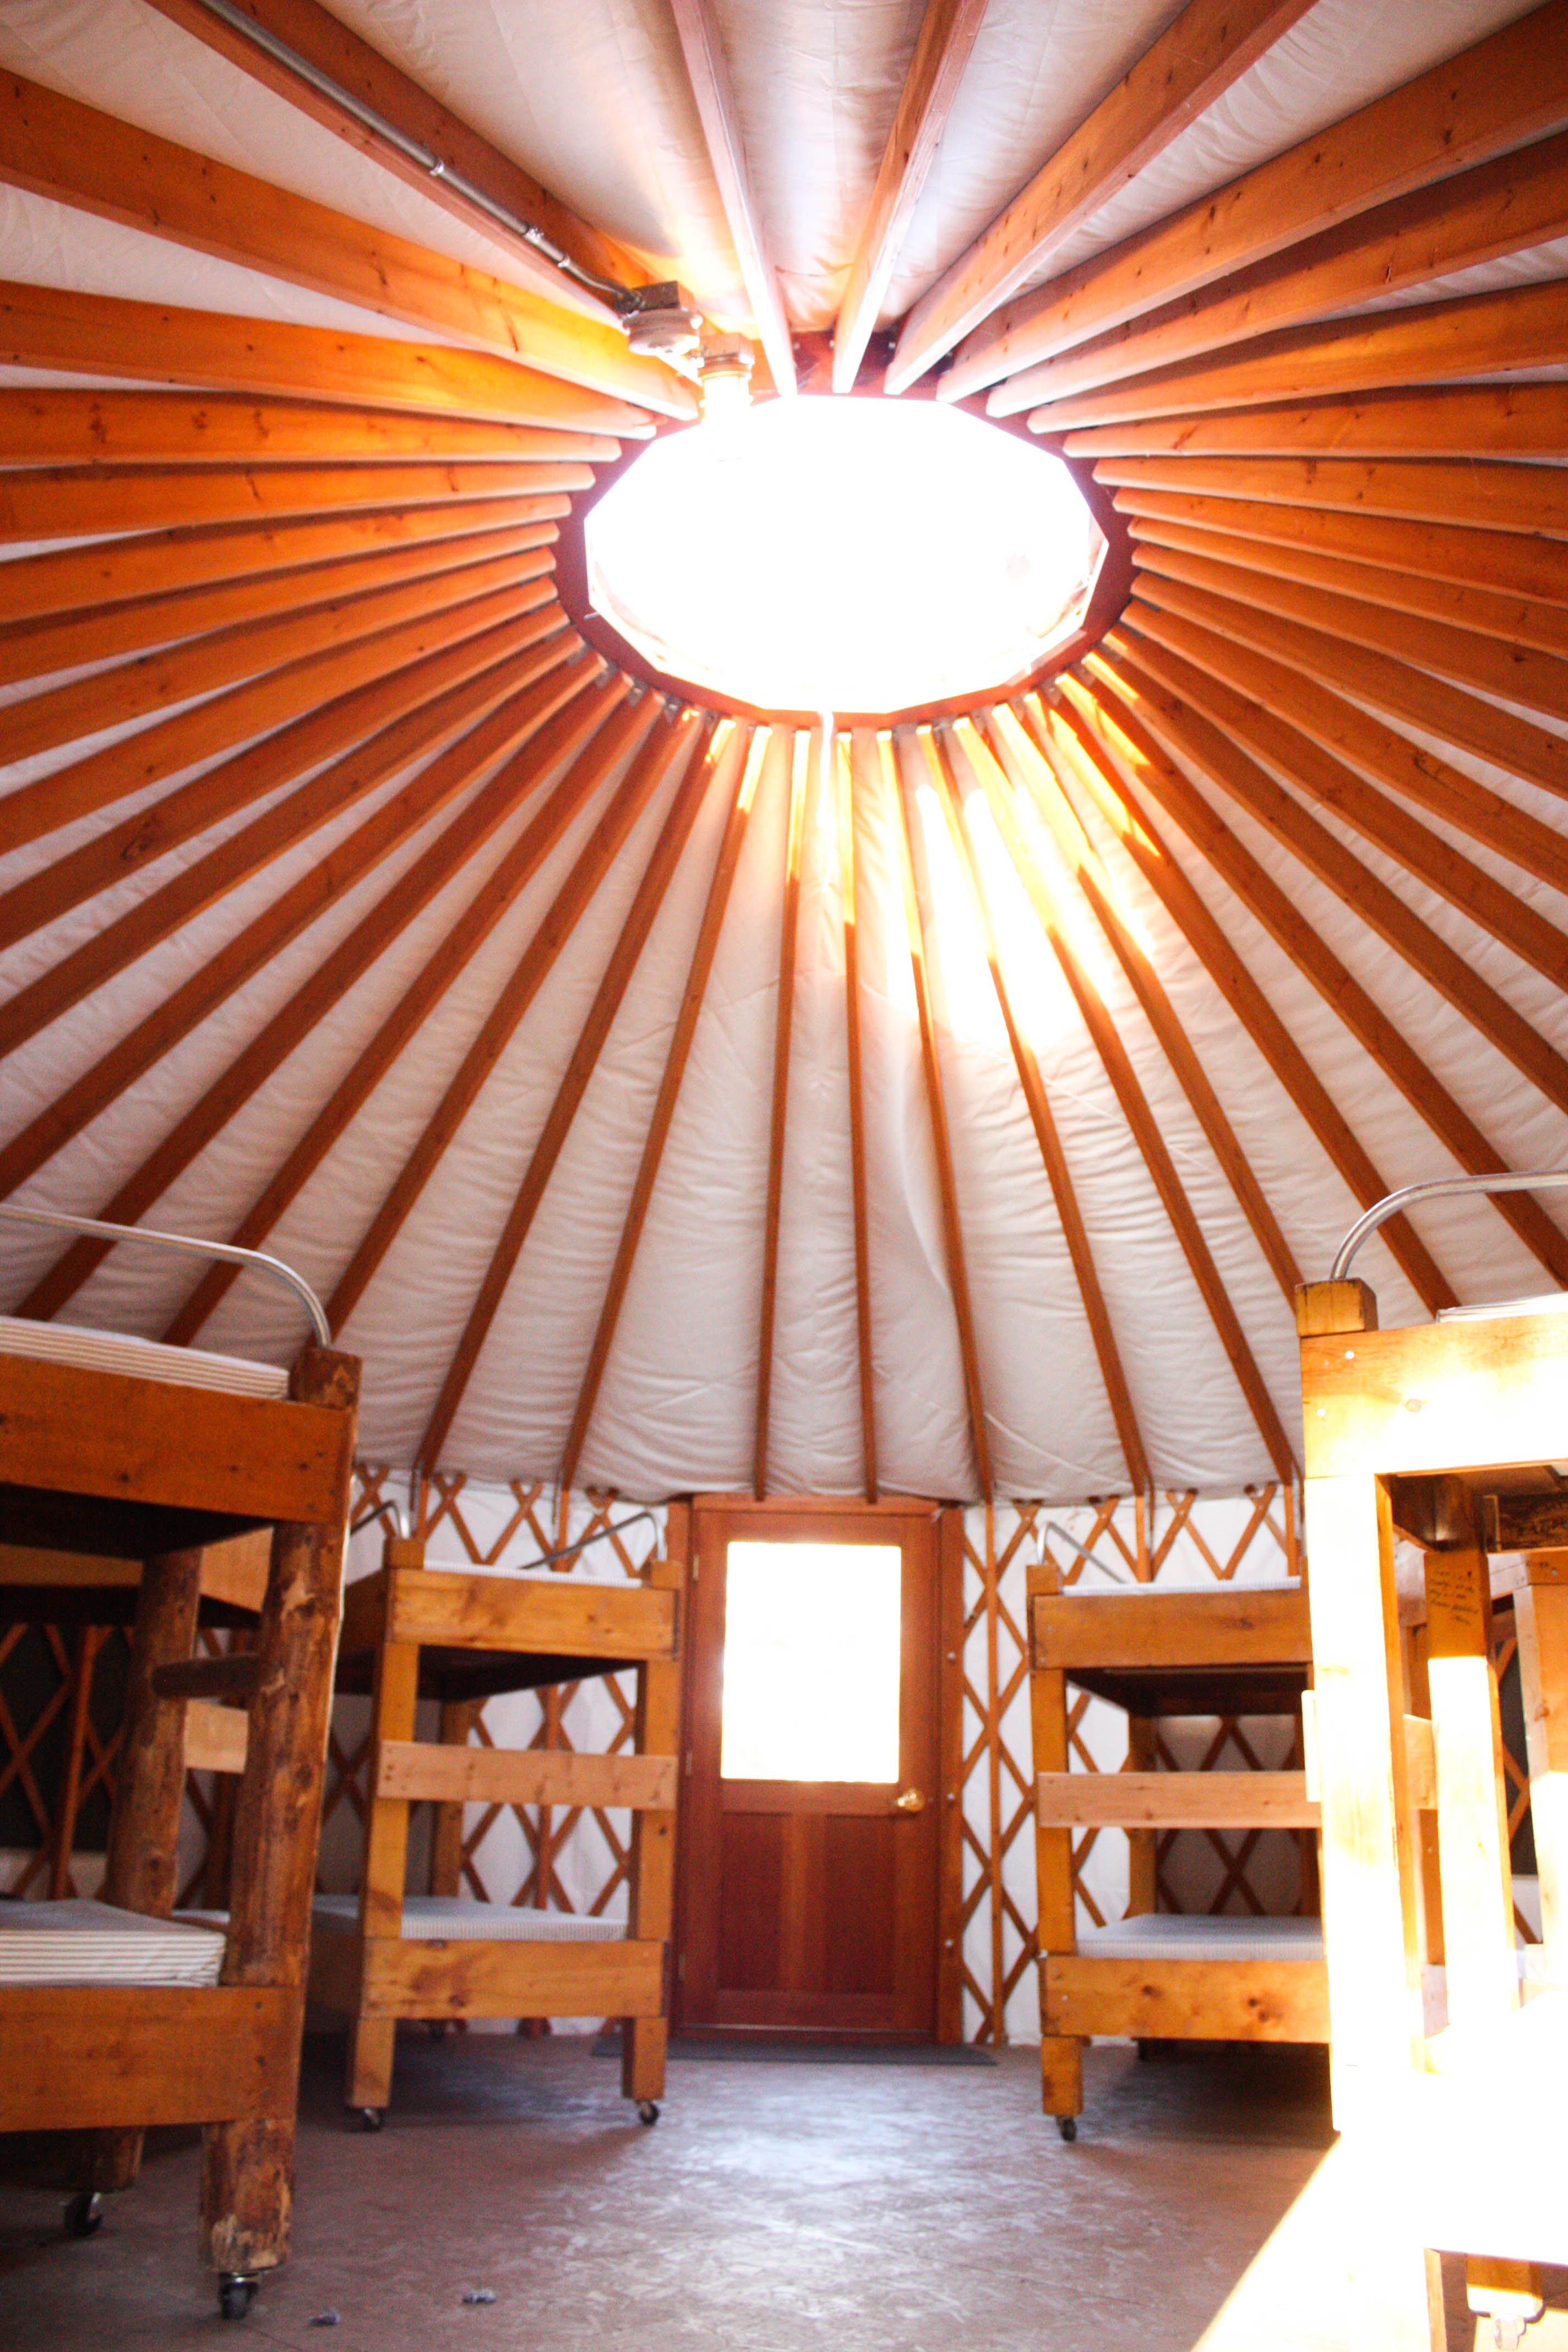 Link School Yurt, Colorado